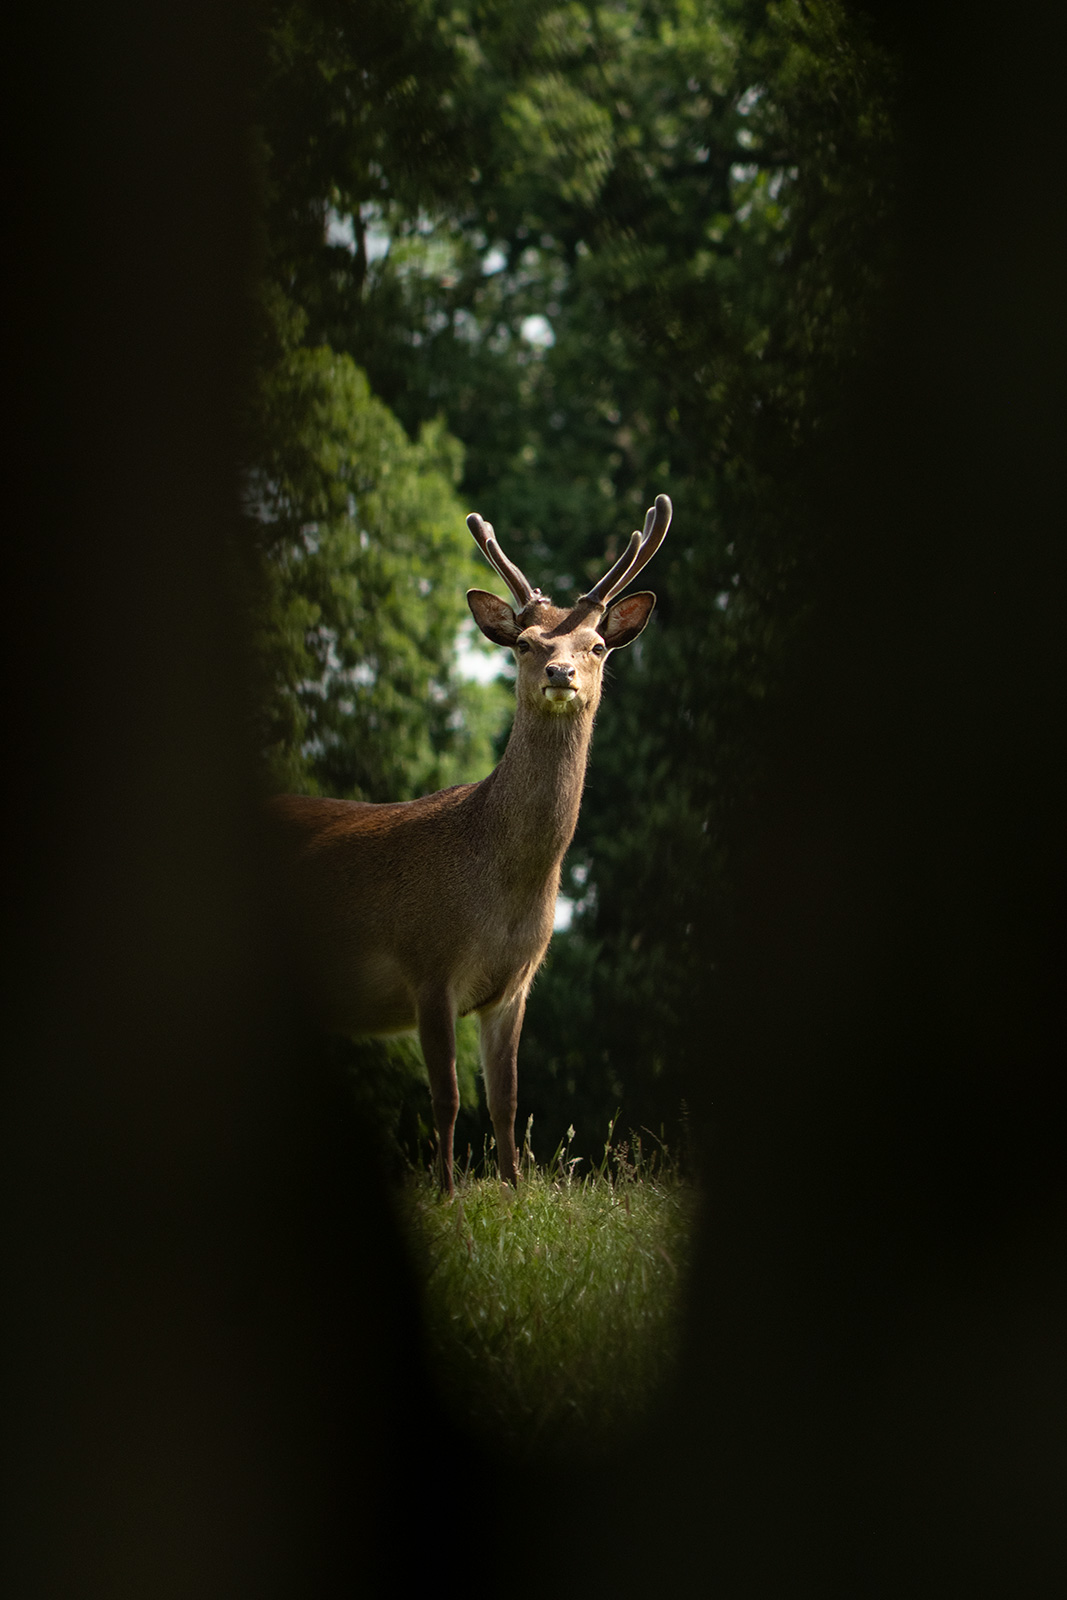 Fallow deer stag with green antlers standing in meadow grass seen through cleft in tree, rural colour portrait Woodmancote West Sussex UK ©P. Maton 2019 eyeteeth.net